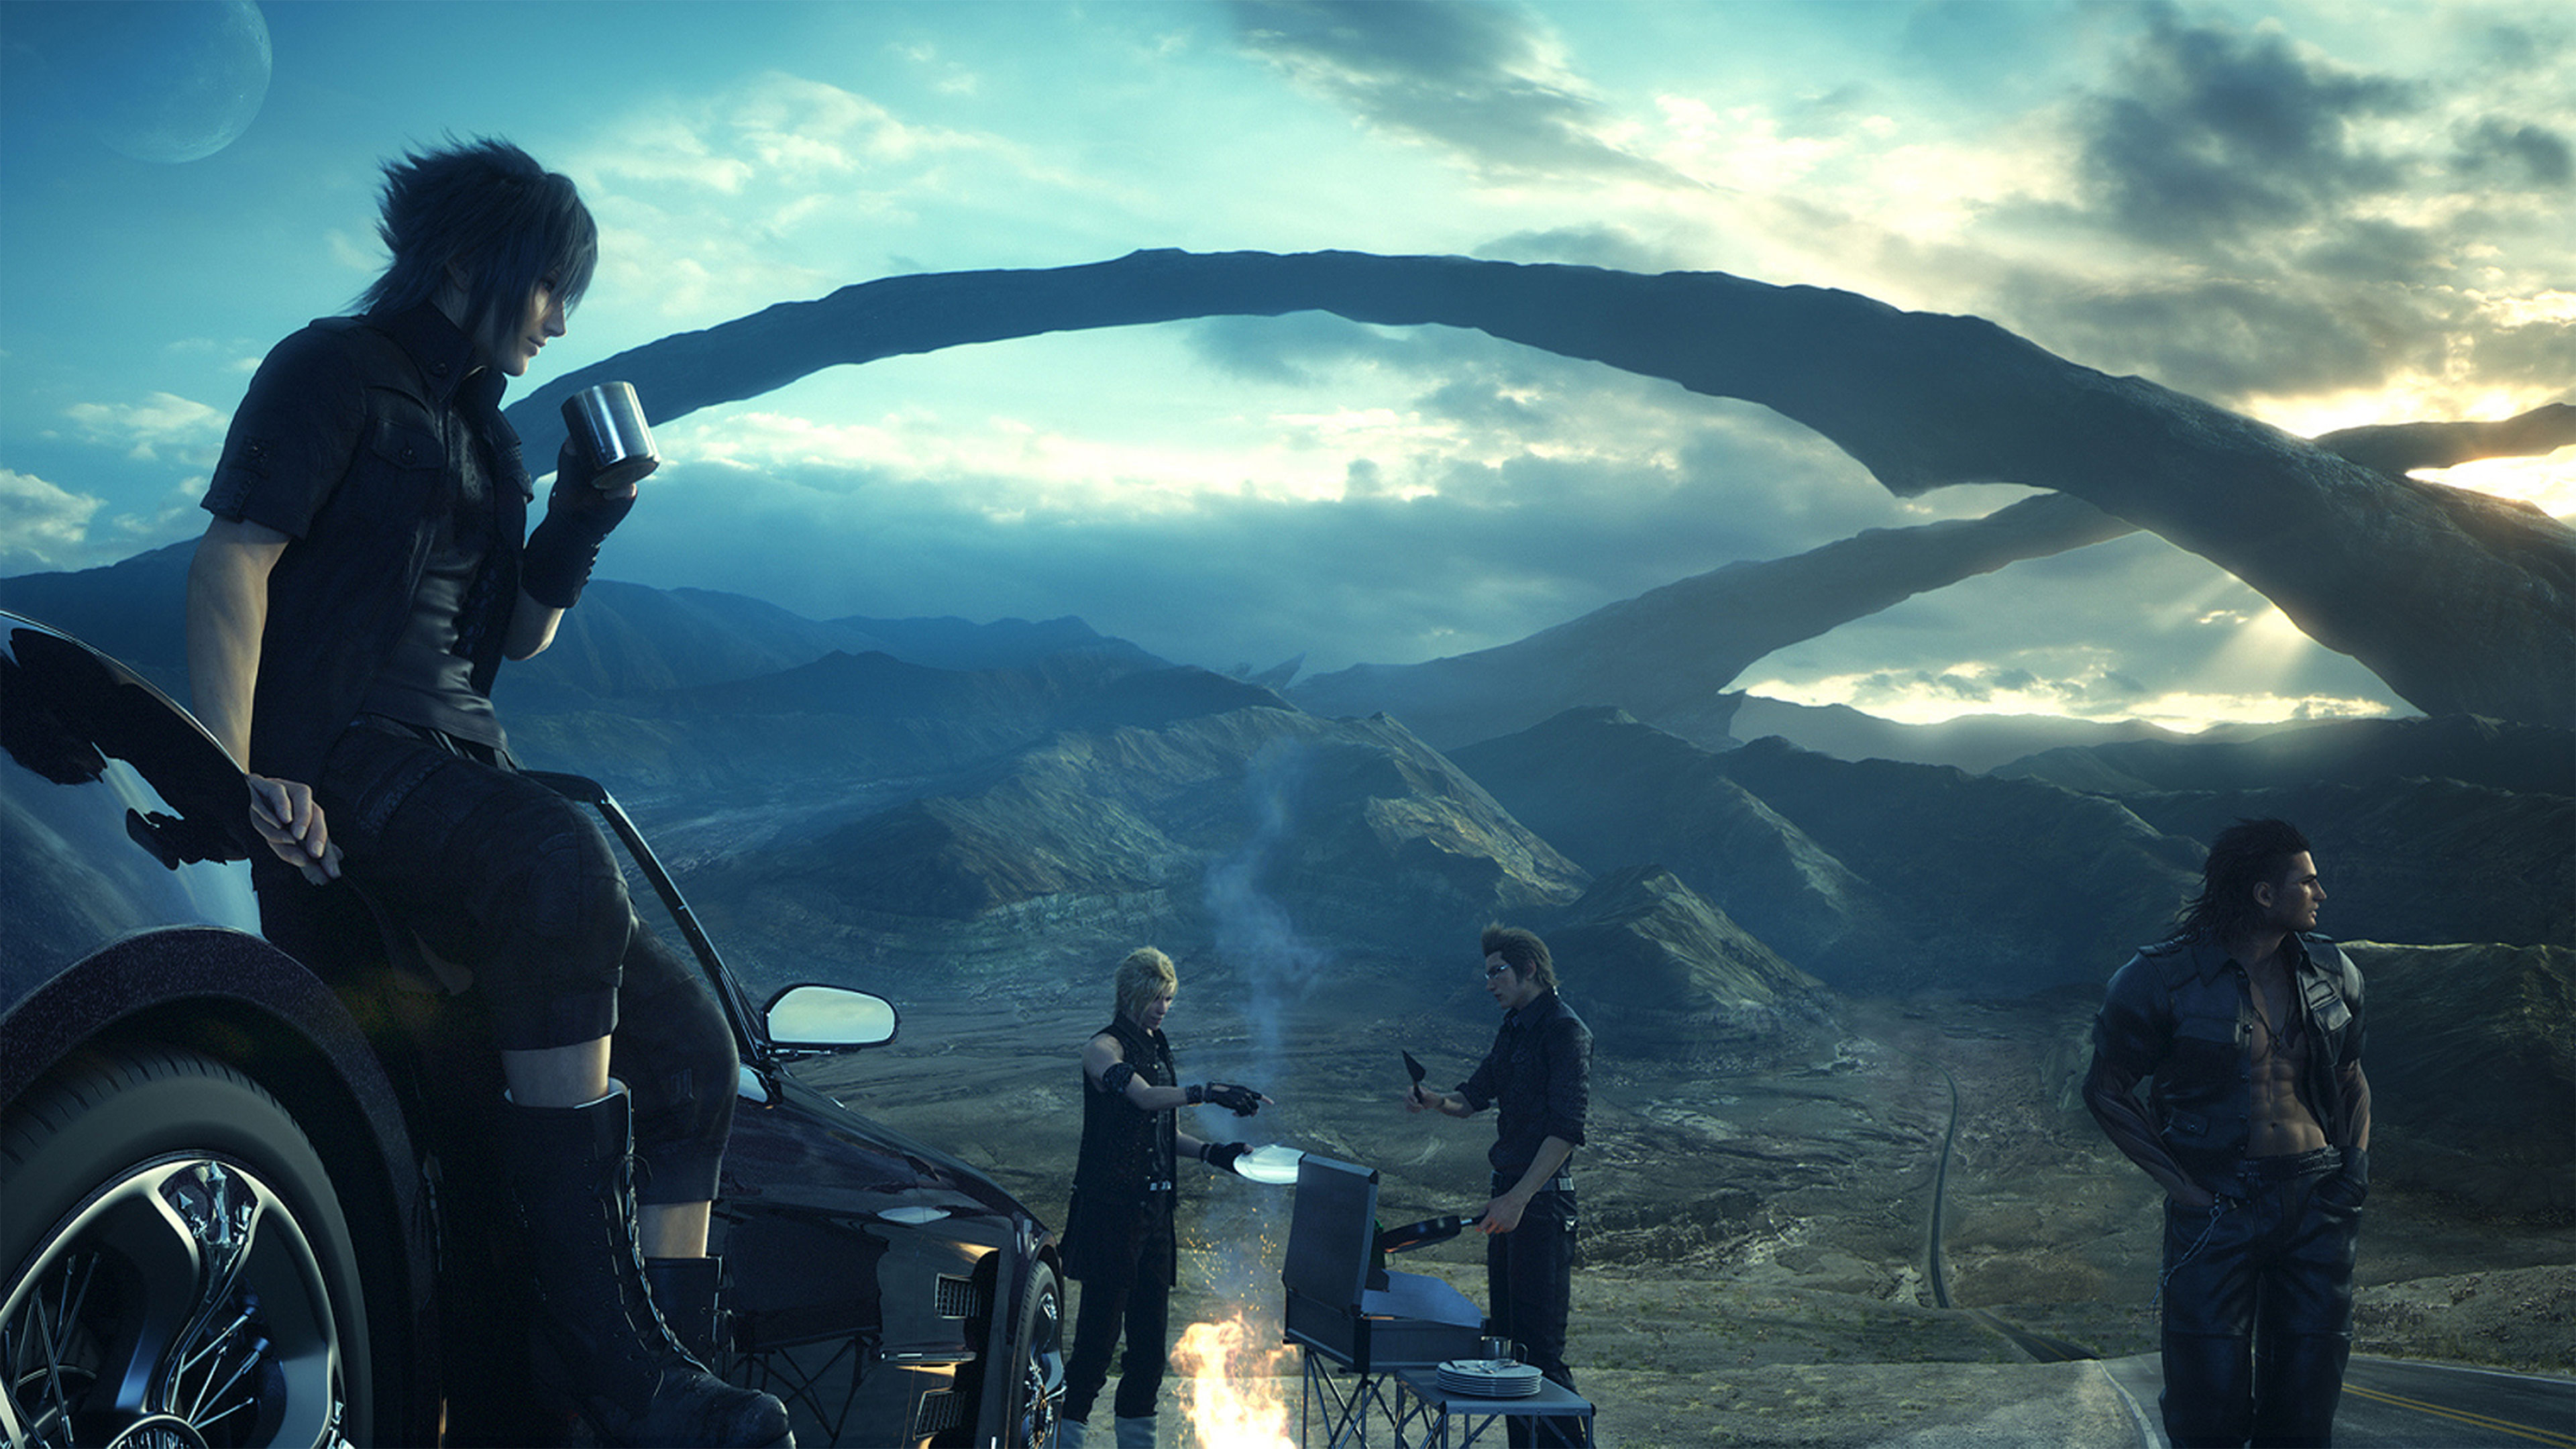 final fantasy xv wallpapers in ultra hd 4k